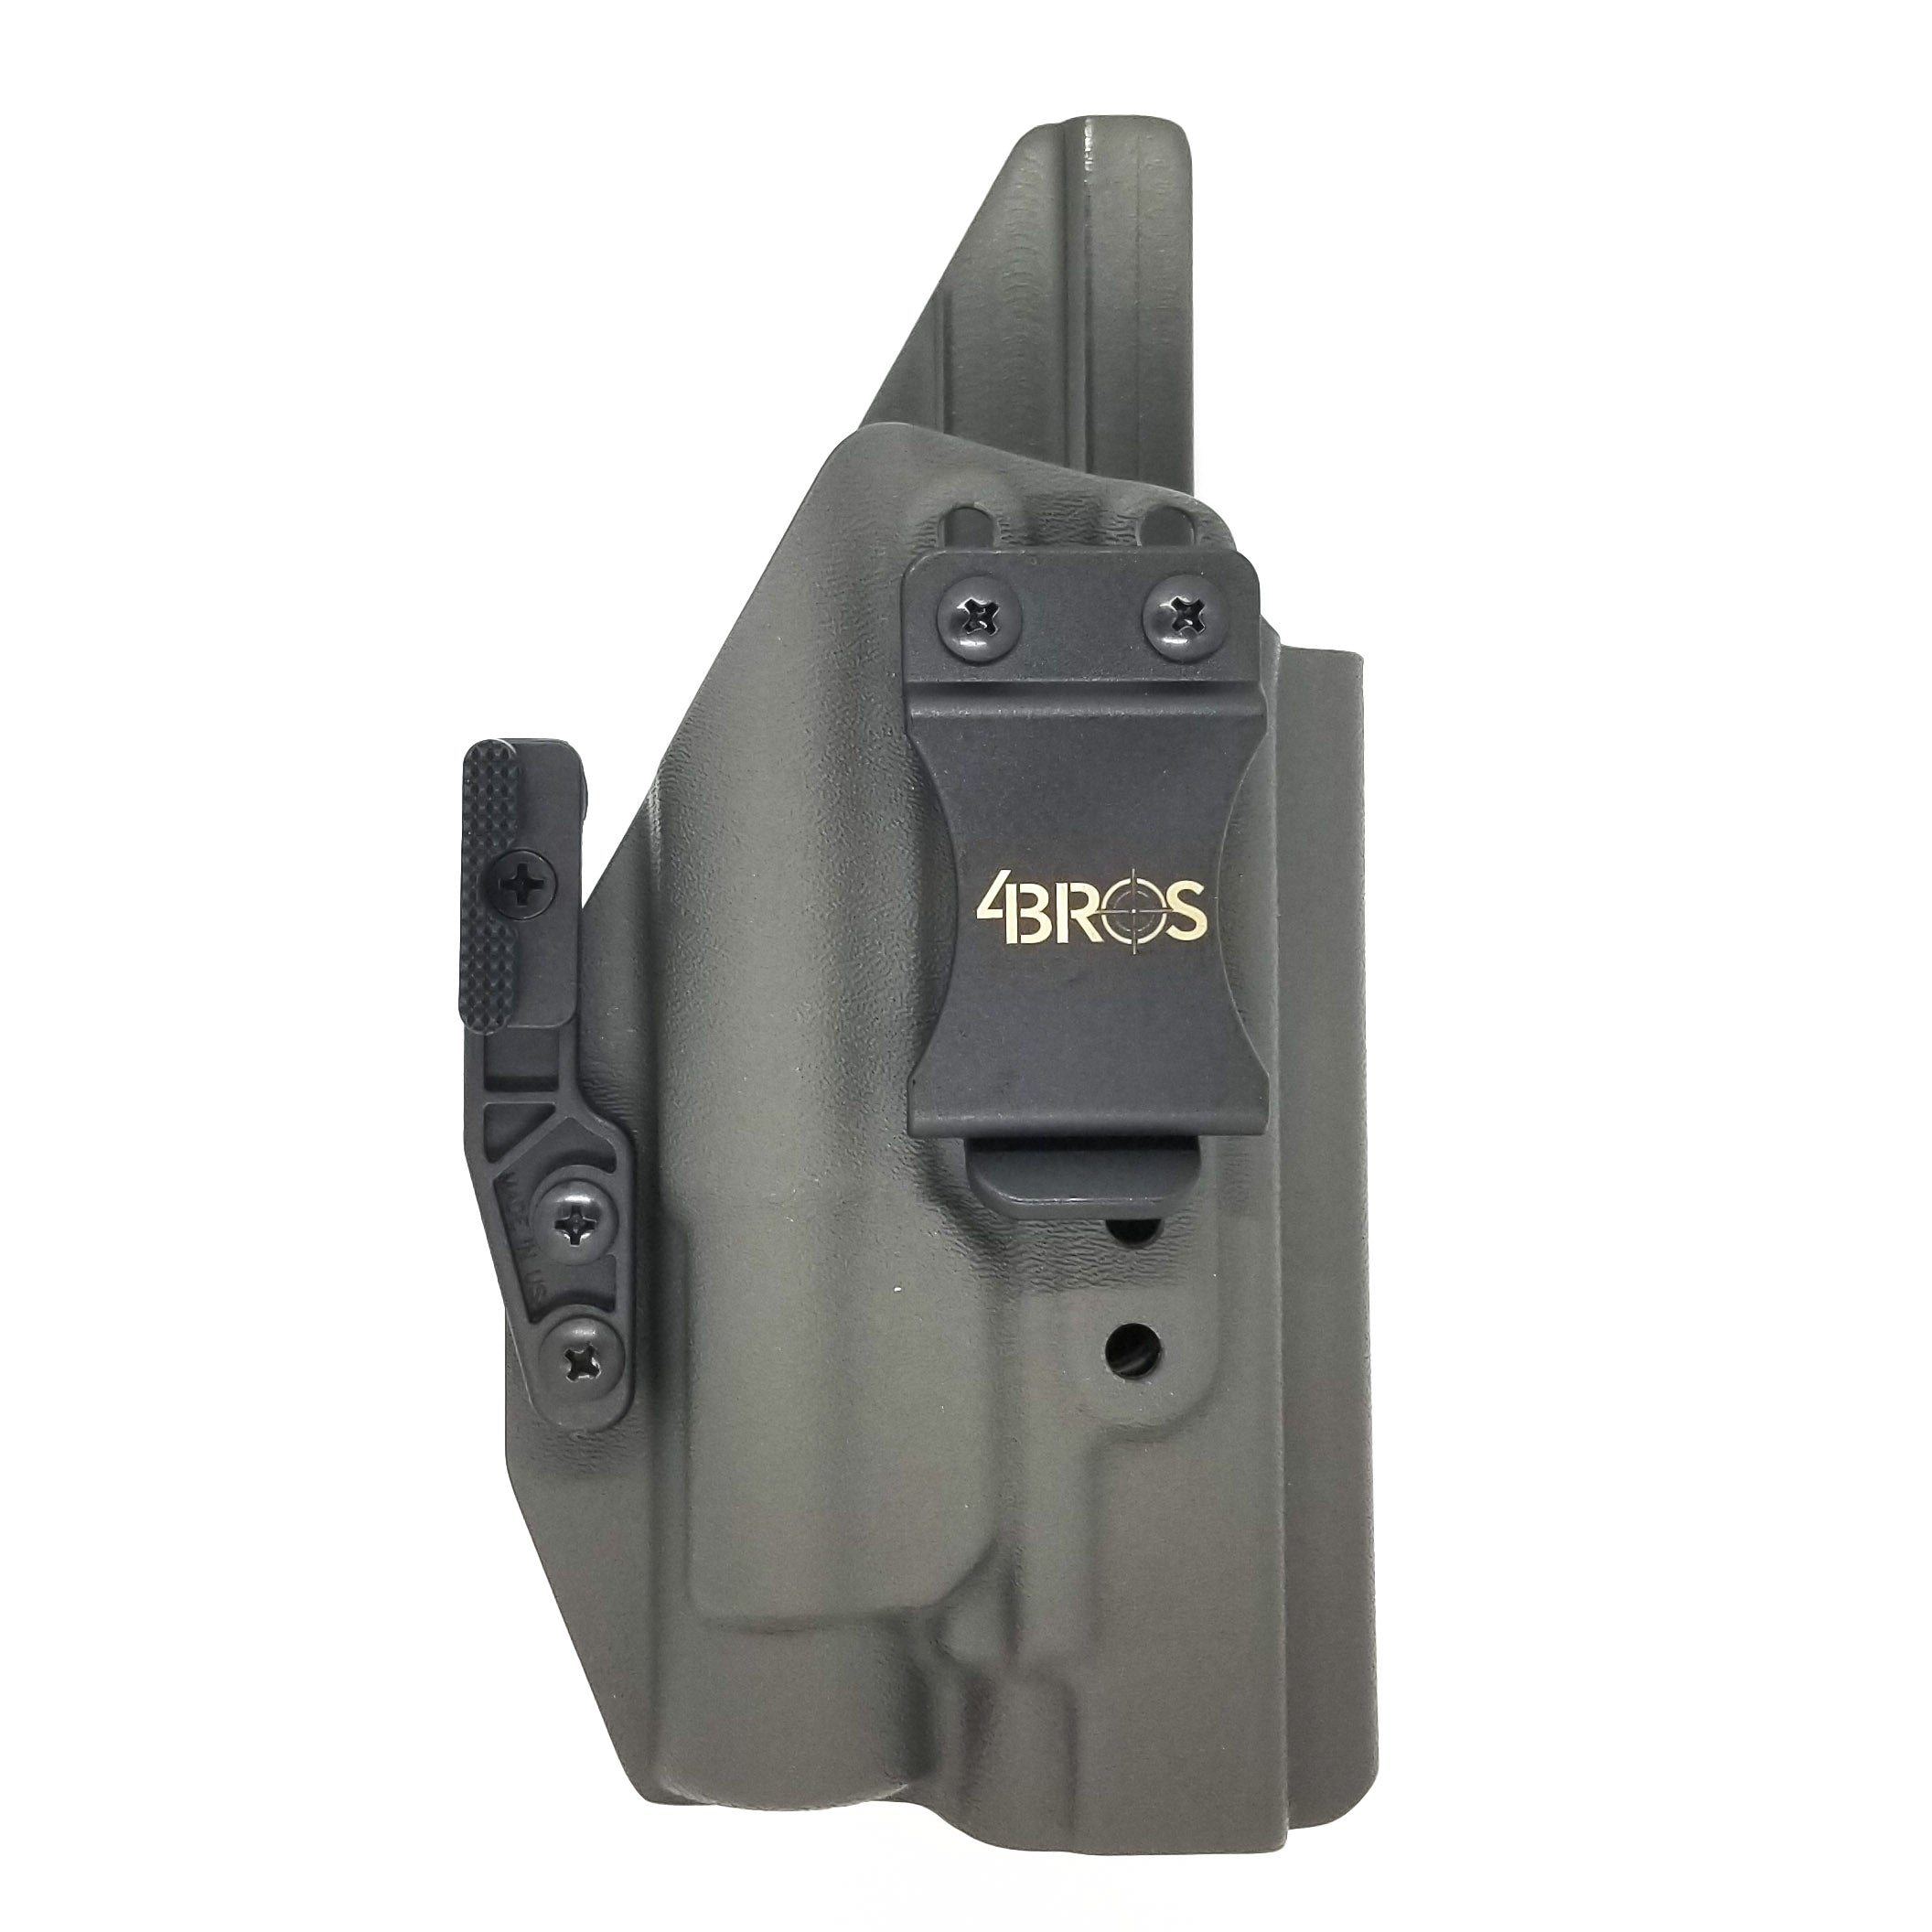 Polymer 80 P940 & P940C with TLR-1 IWB Holster